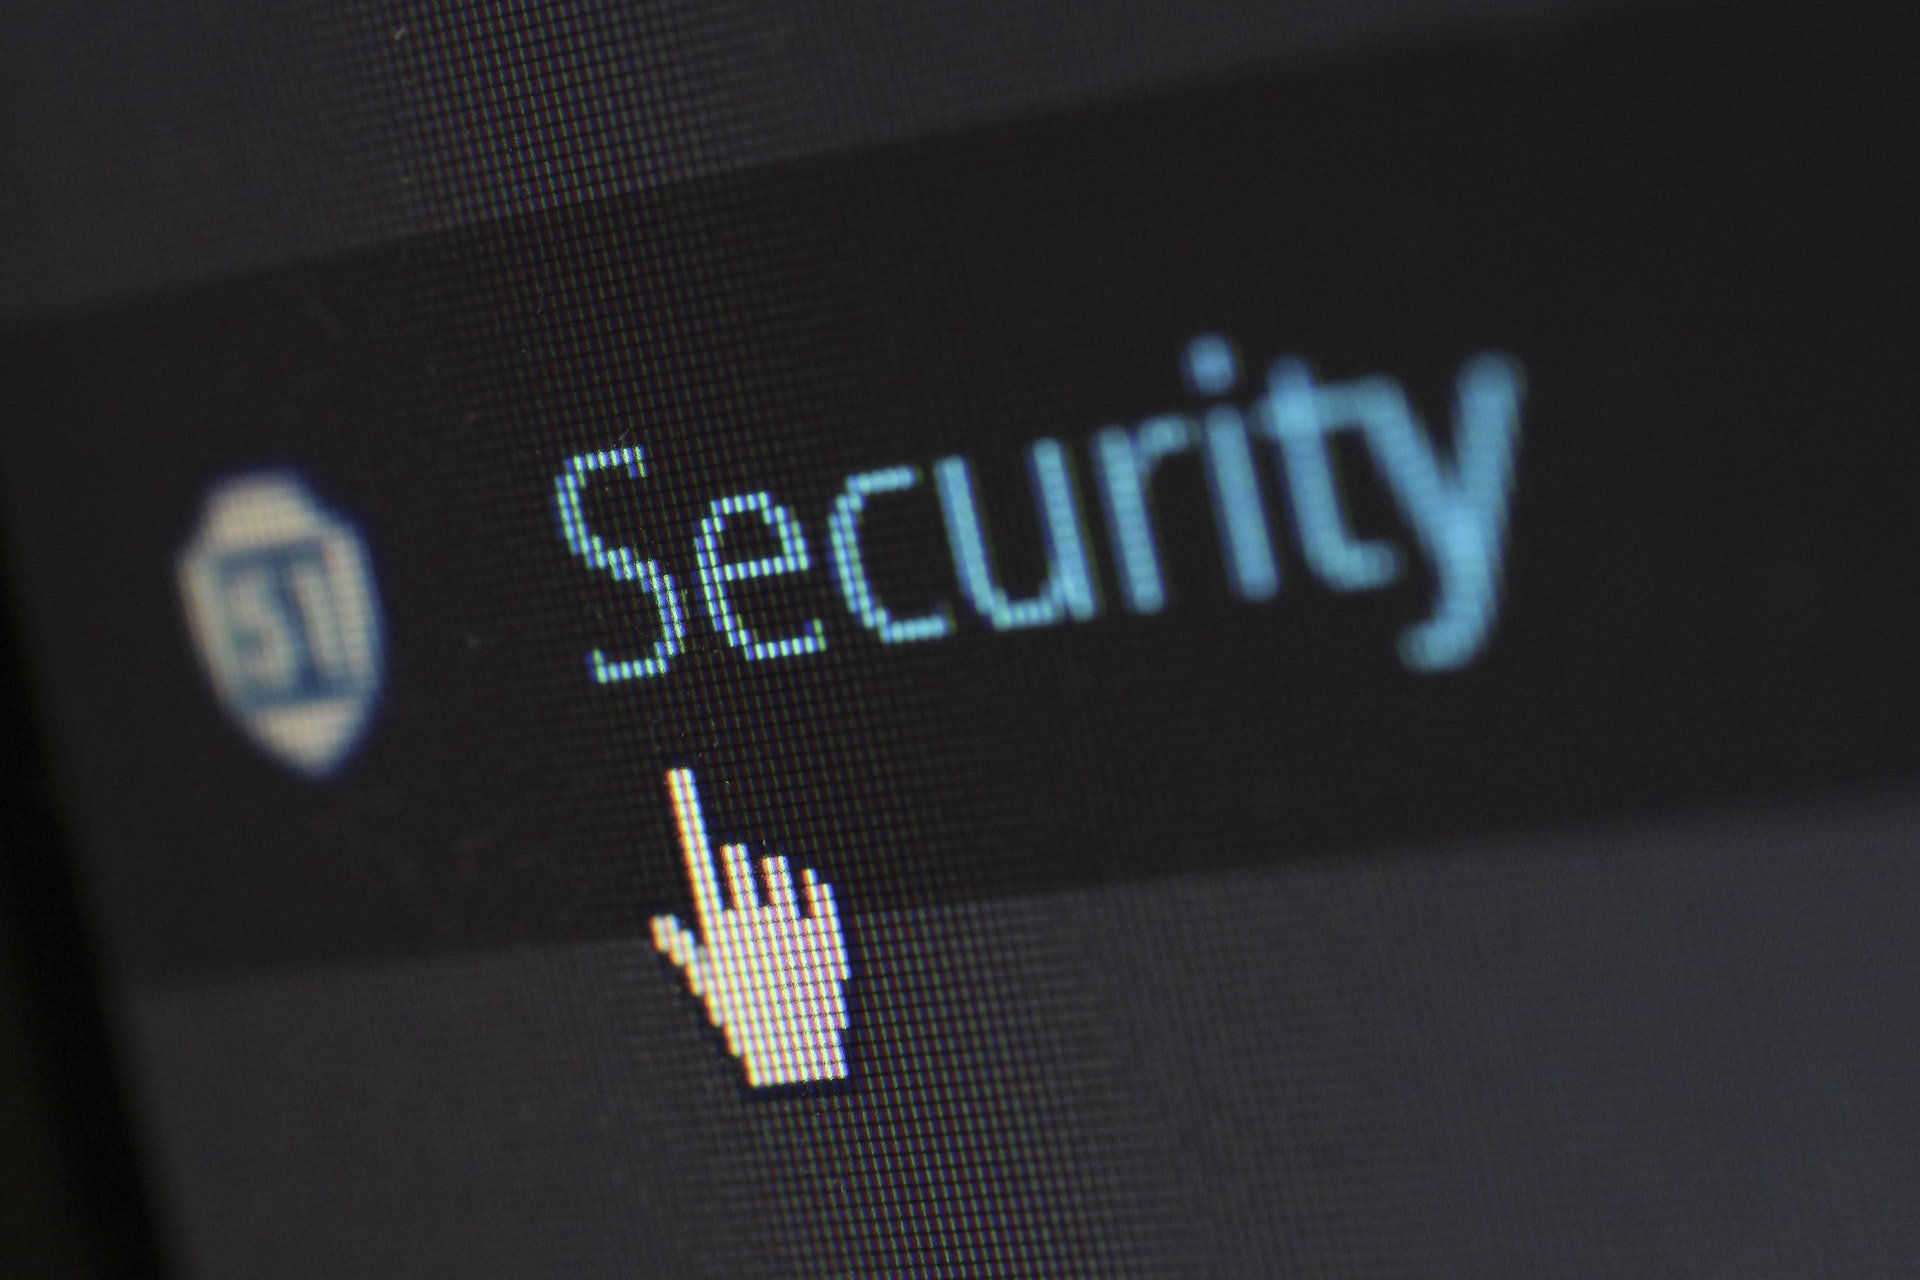 More opportunities to study cybersecurity